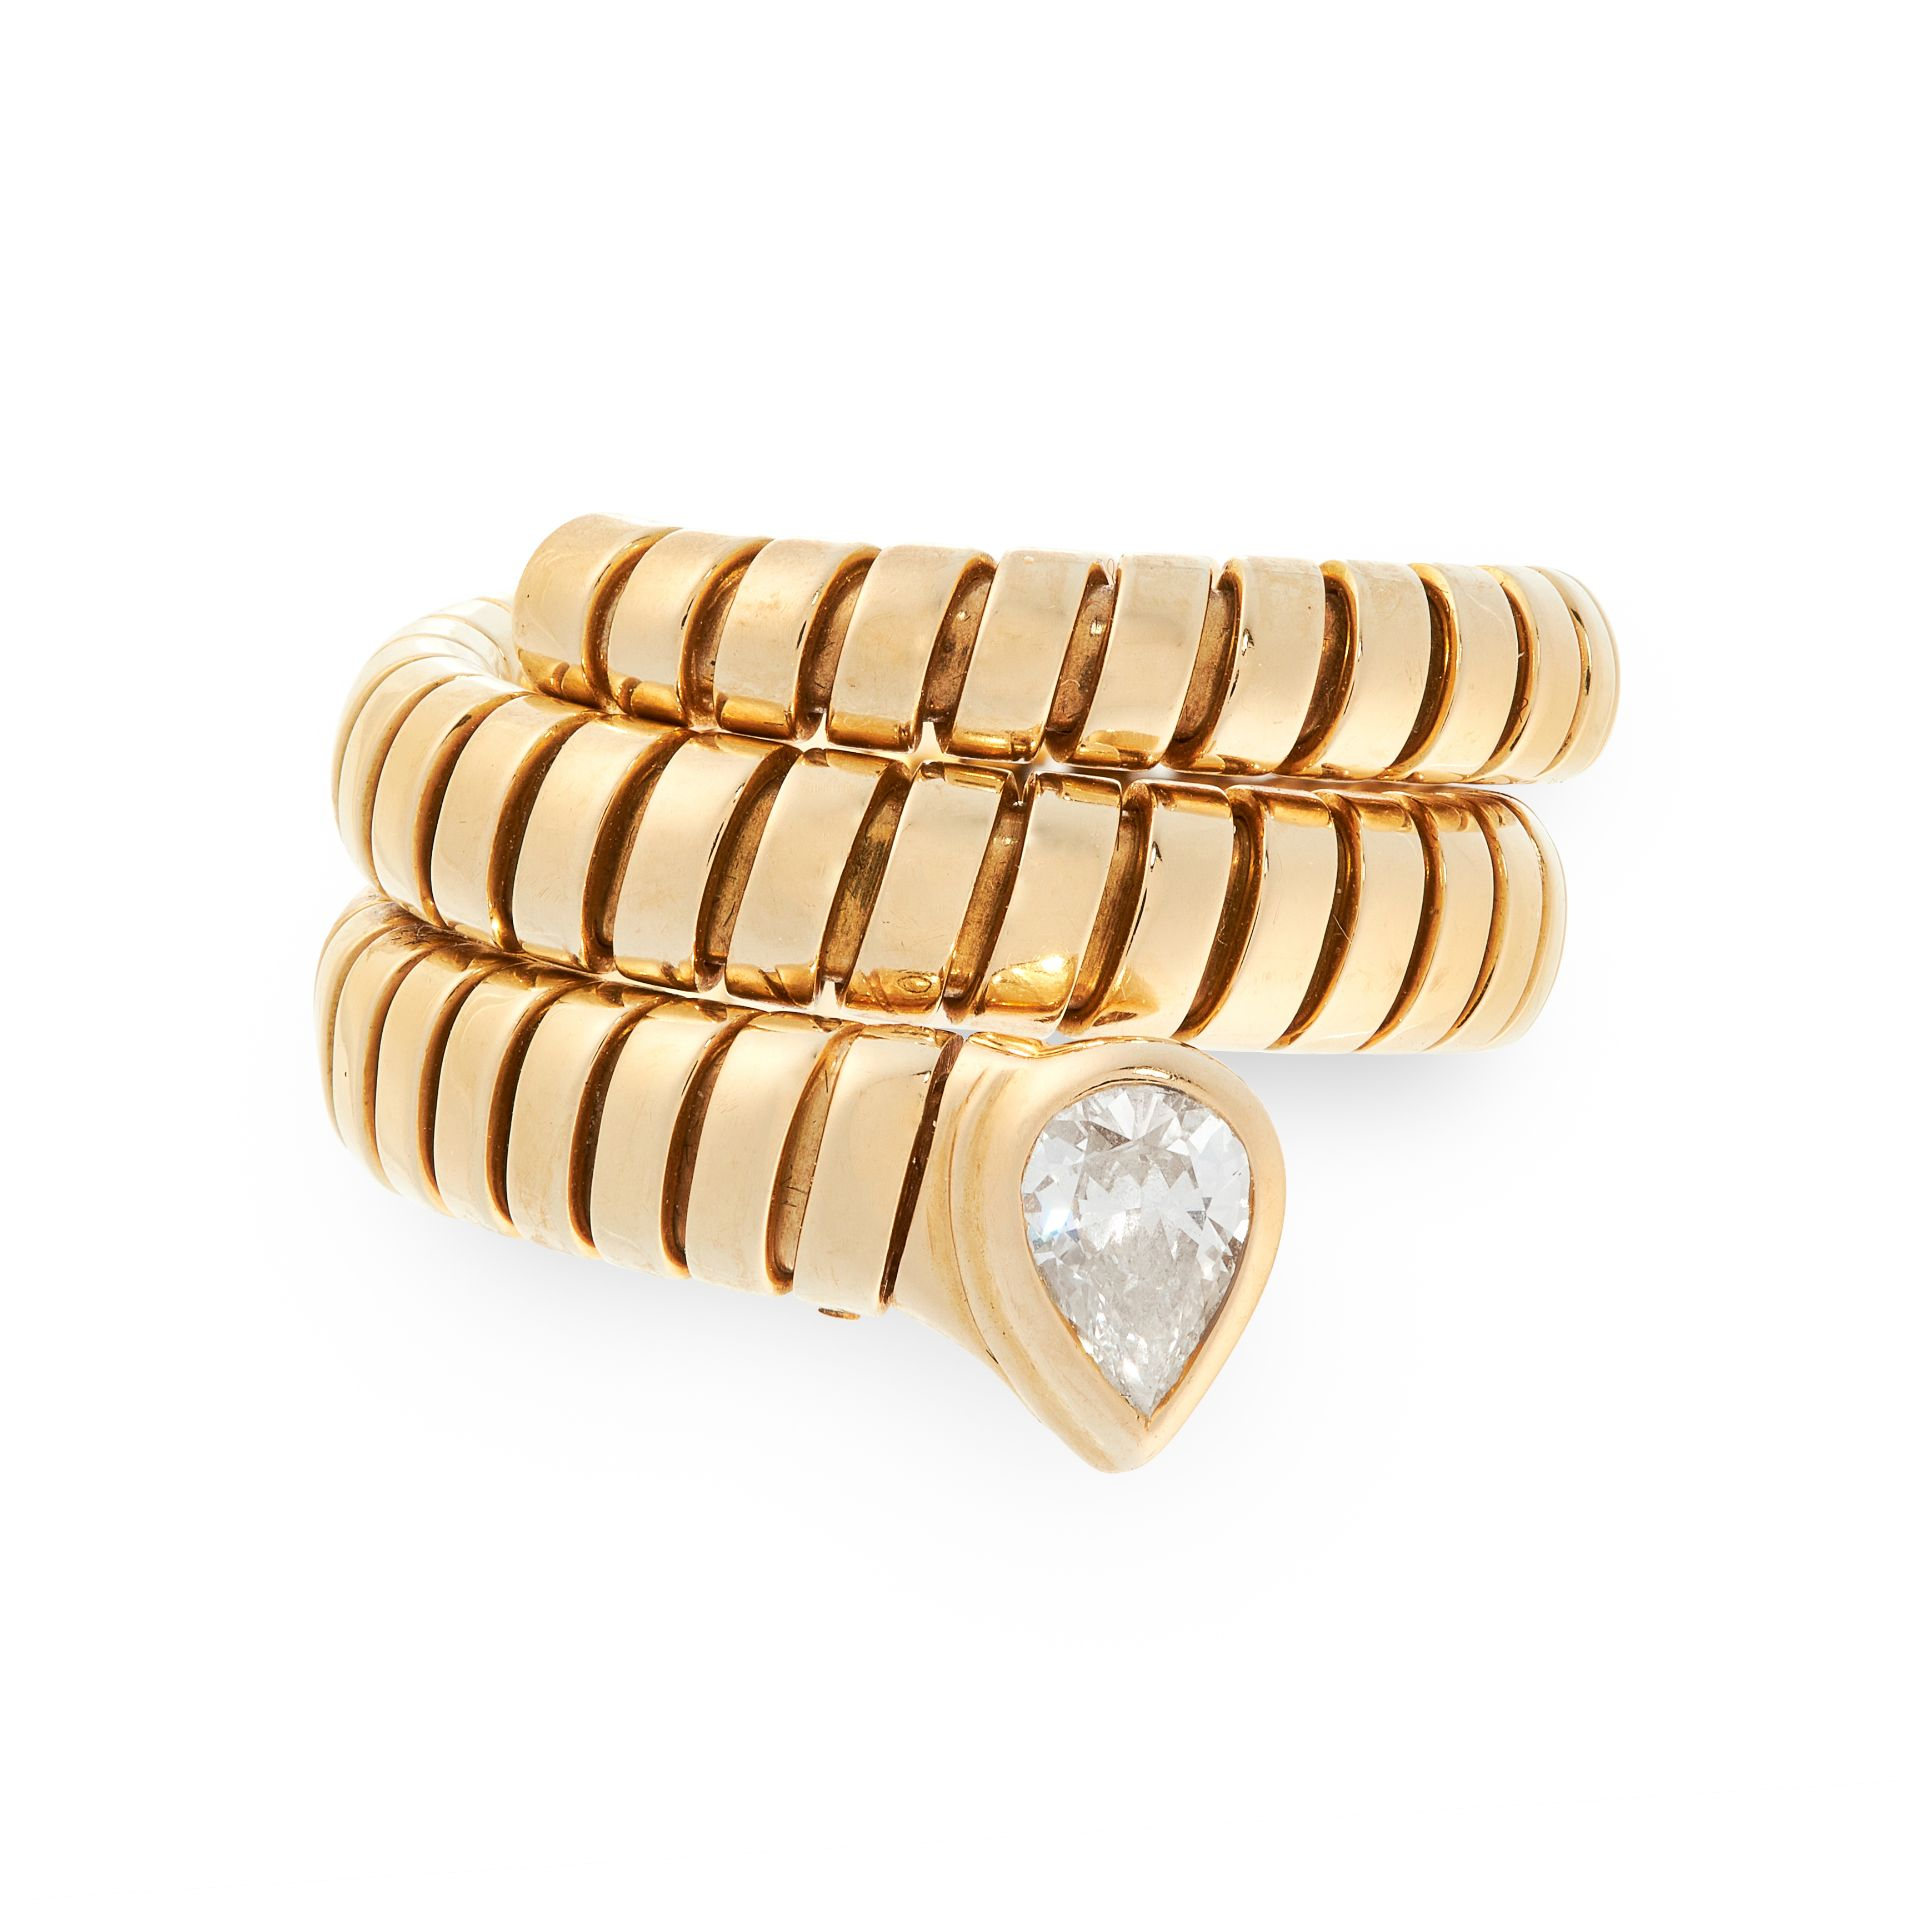 A TUBOGAS SERPENTI DIAMOND RING, BULGARI in 18ct yellow gold, designed as the body of a snake in the